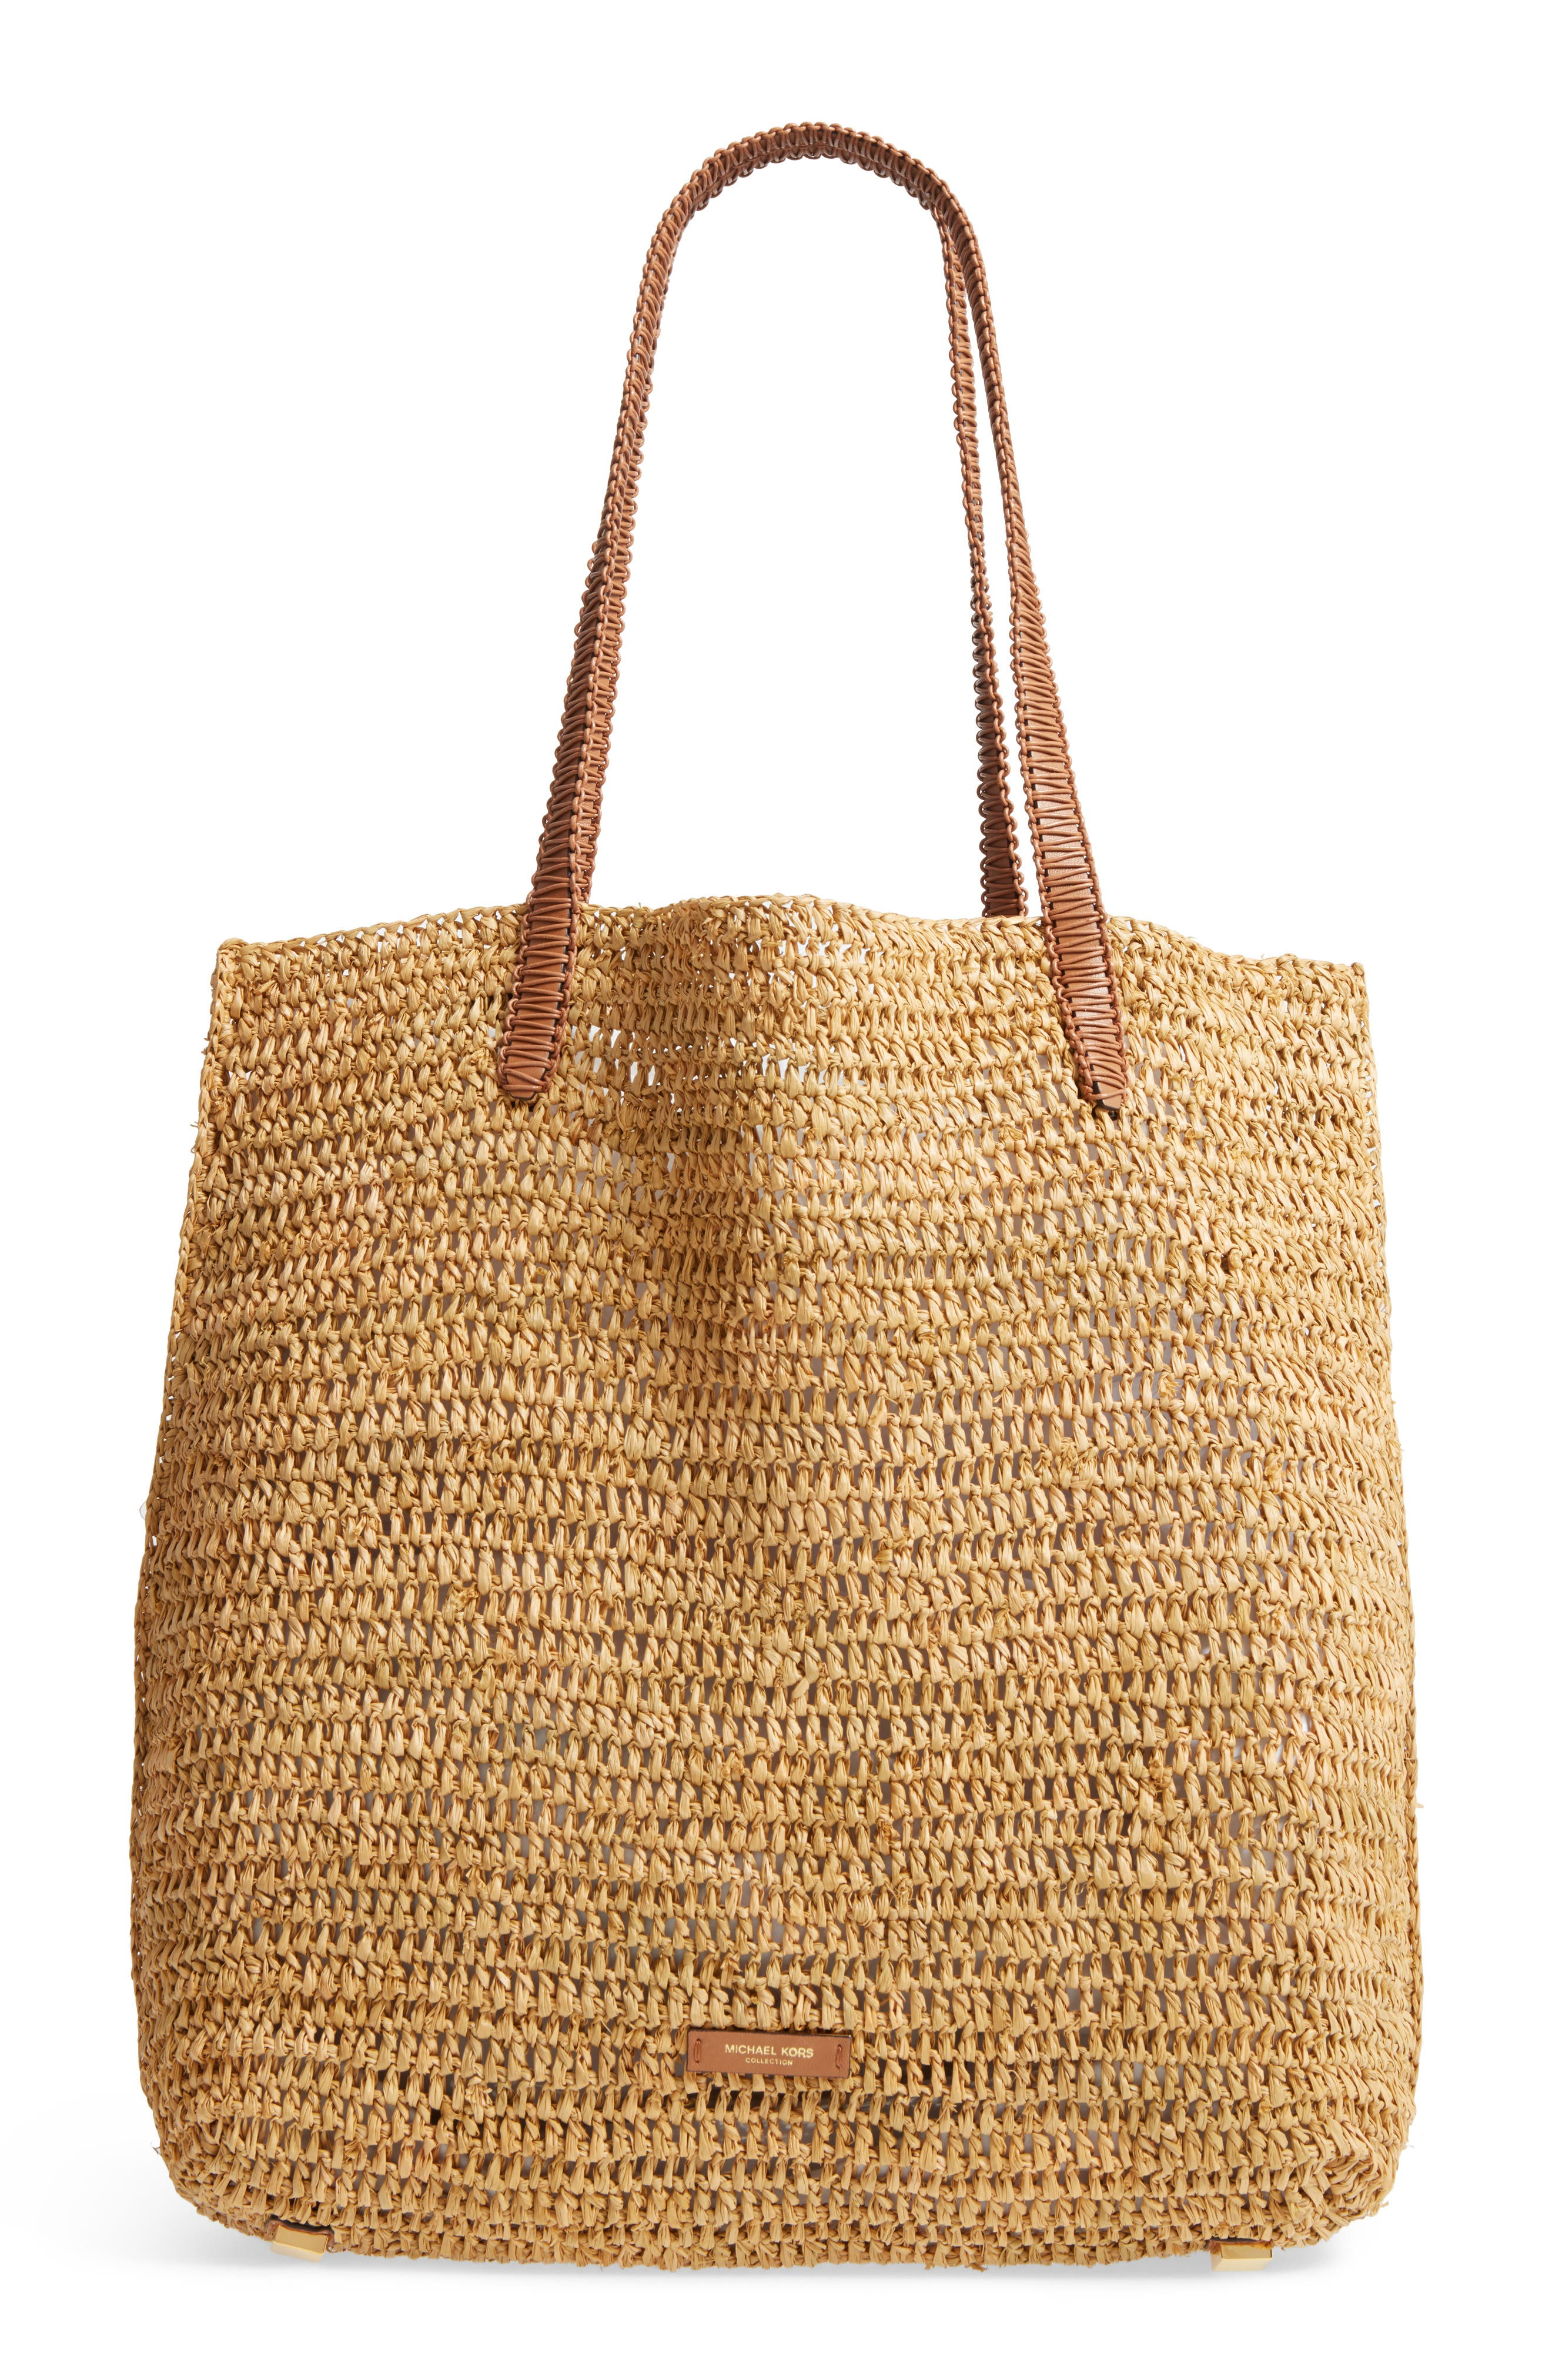 Skorpios Tassel Woven Straw Tote,                             Alternate thumbnail 3, color,                             201